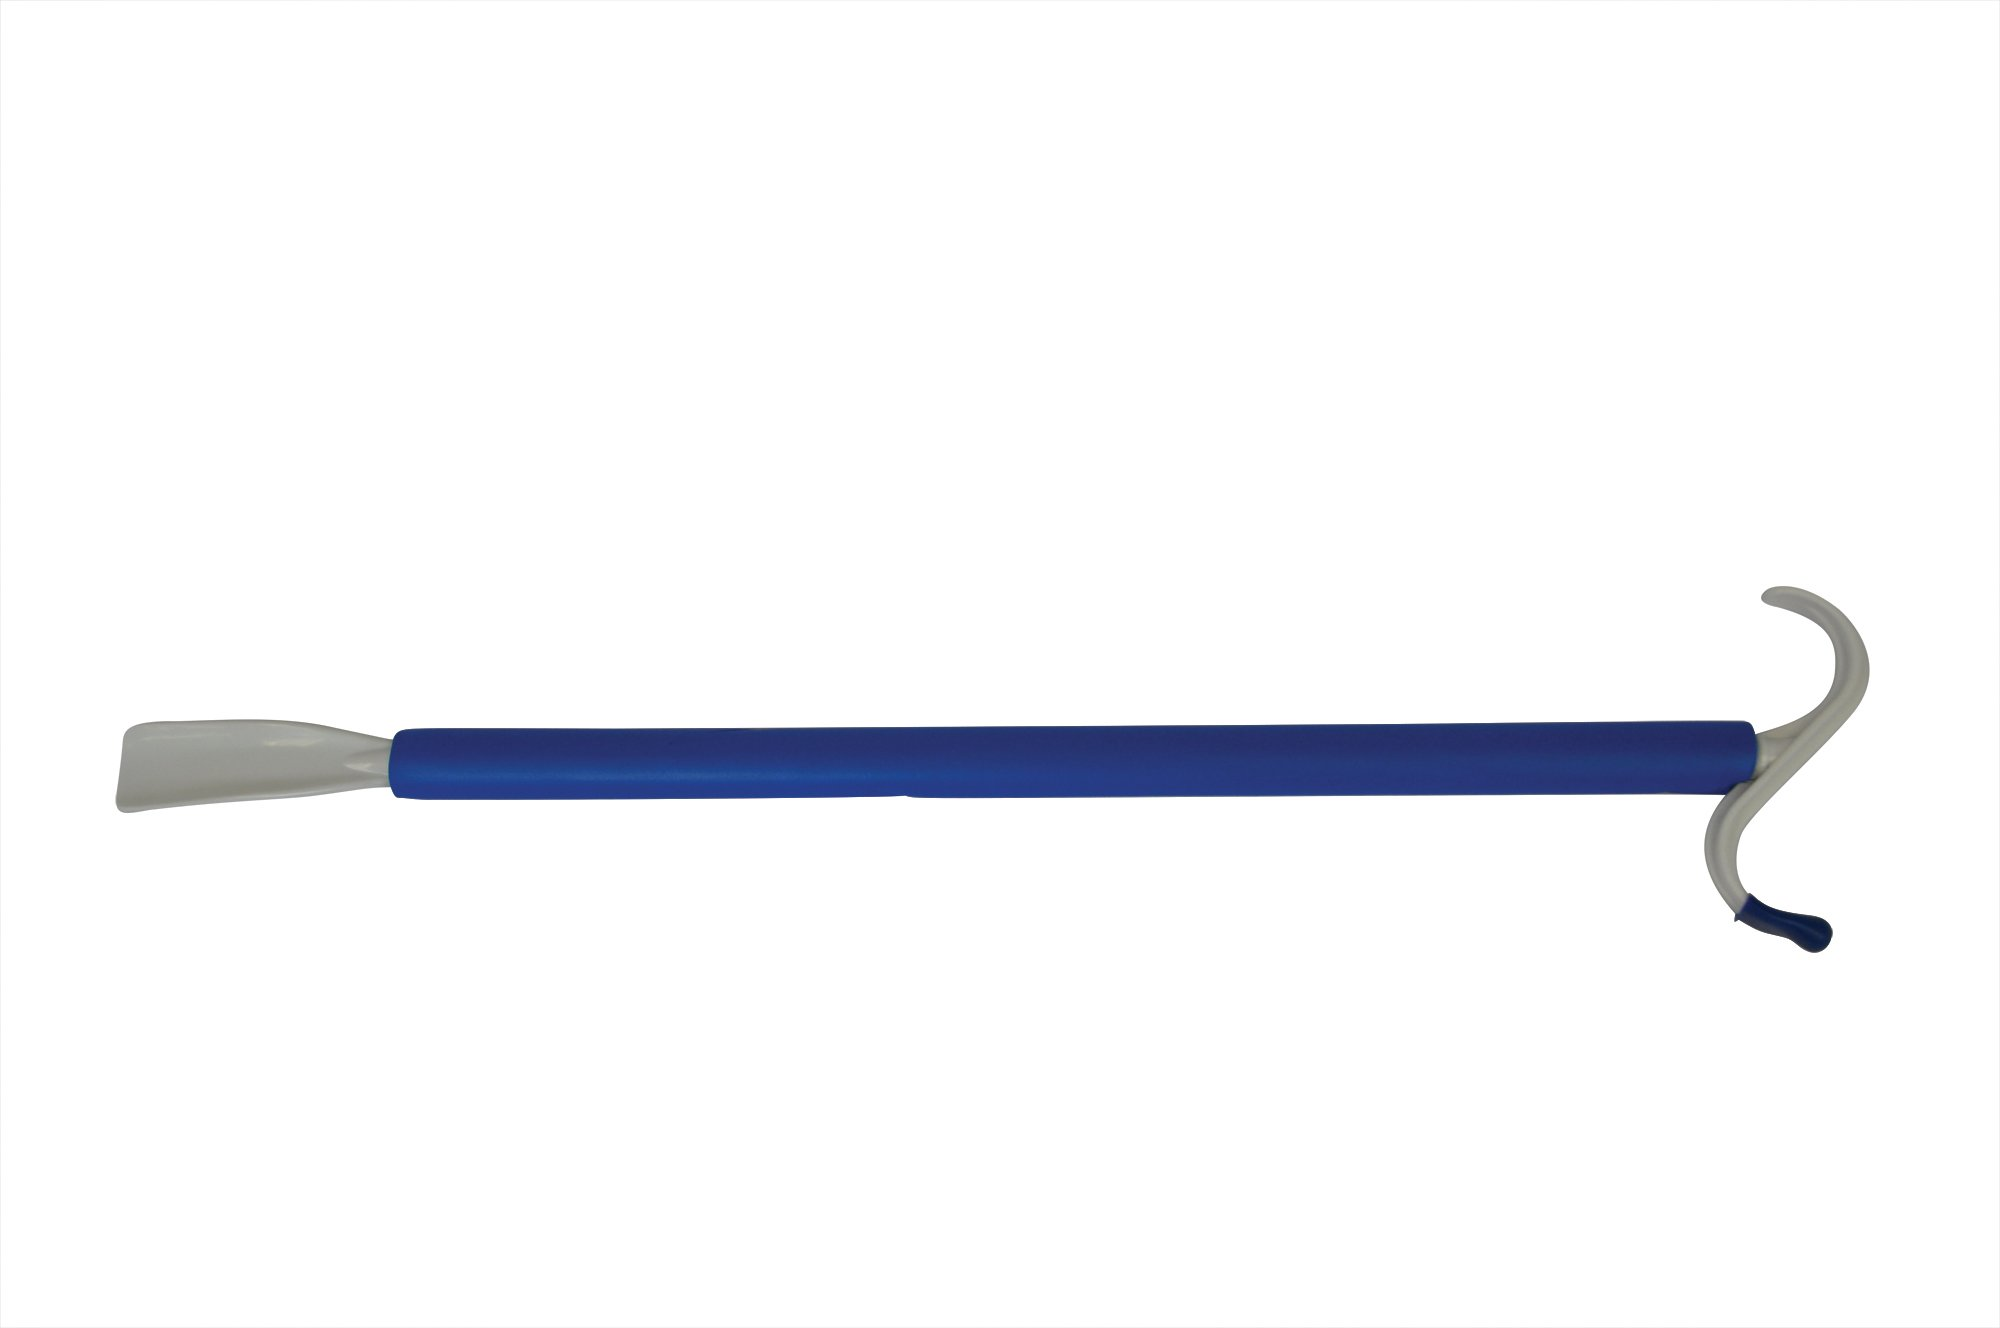 Blue Jay Dressing Stick - 24'' Soft Foam-Covered Handle, 2-in-1 tool, Dressing Made Easy, Rounded S Plastic top hook, No Stretching or Straining Shoehorn Dressing Aid